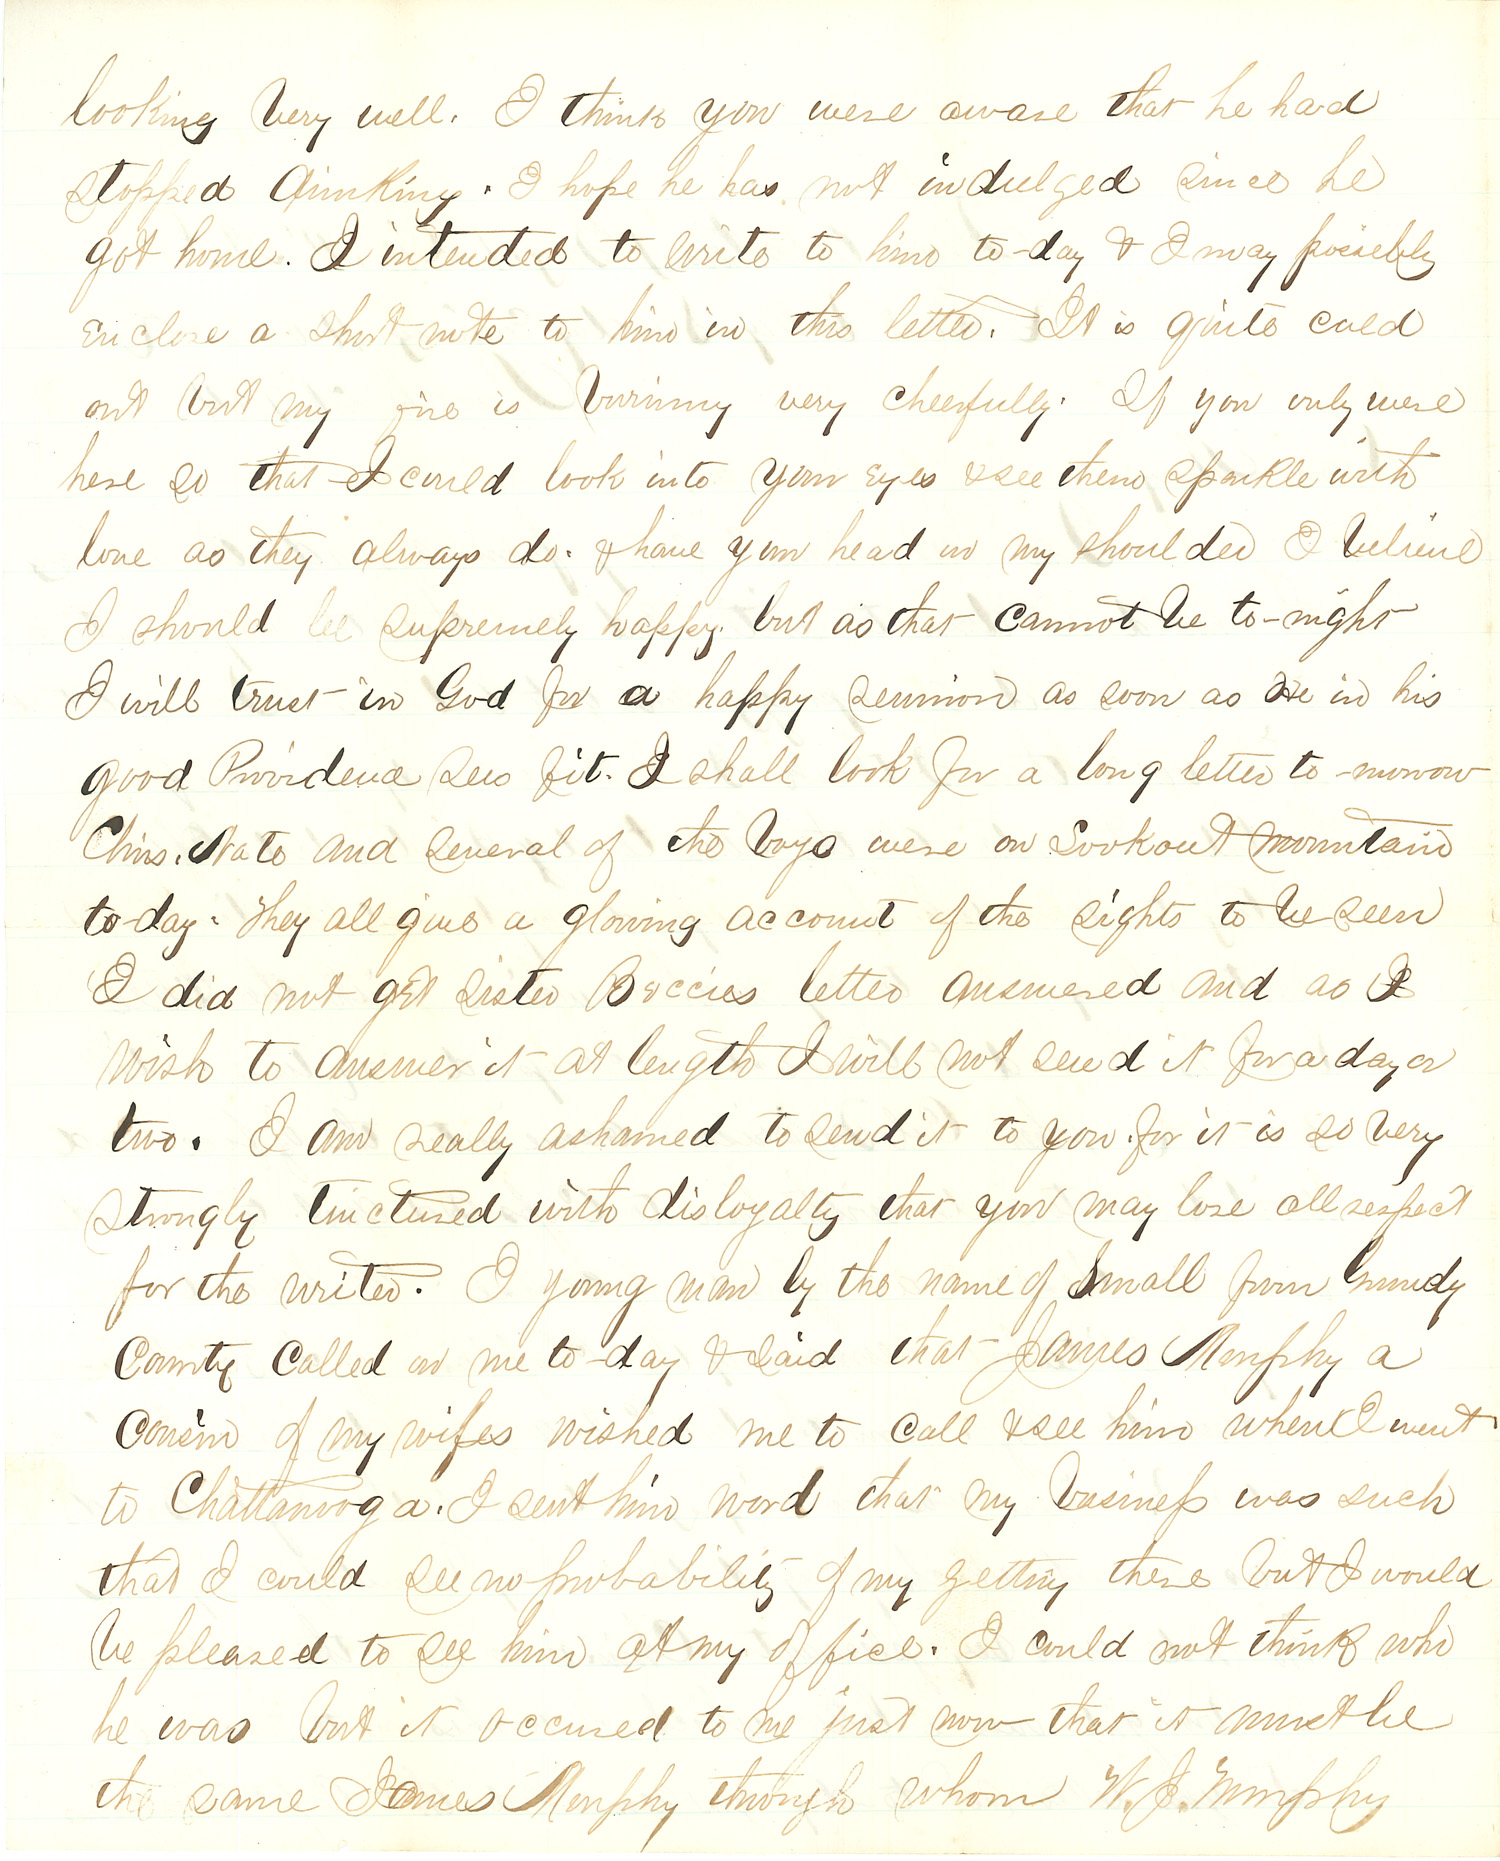 Joseph Culver Letter, March 20, 1864, Letter 2, Page 2